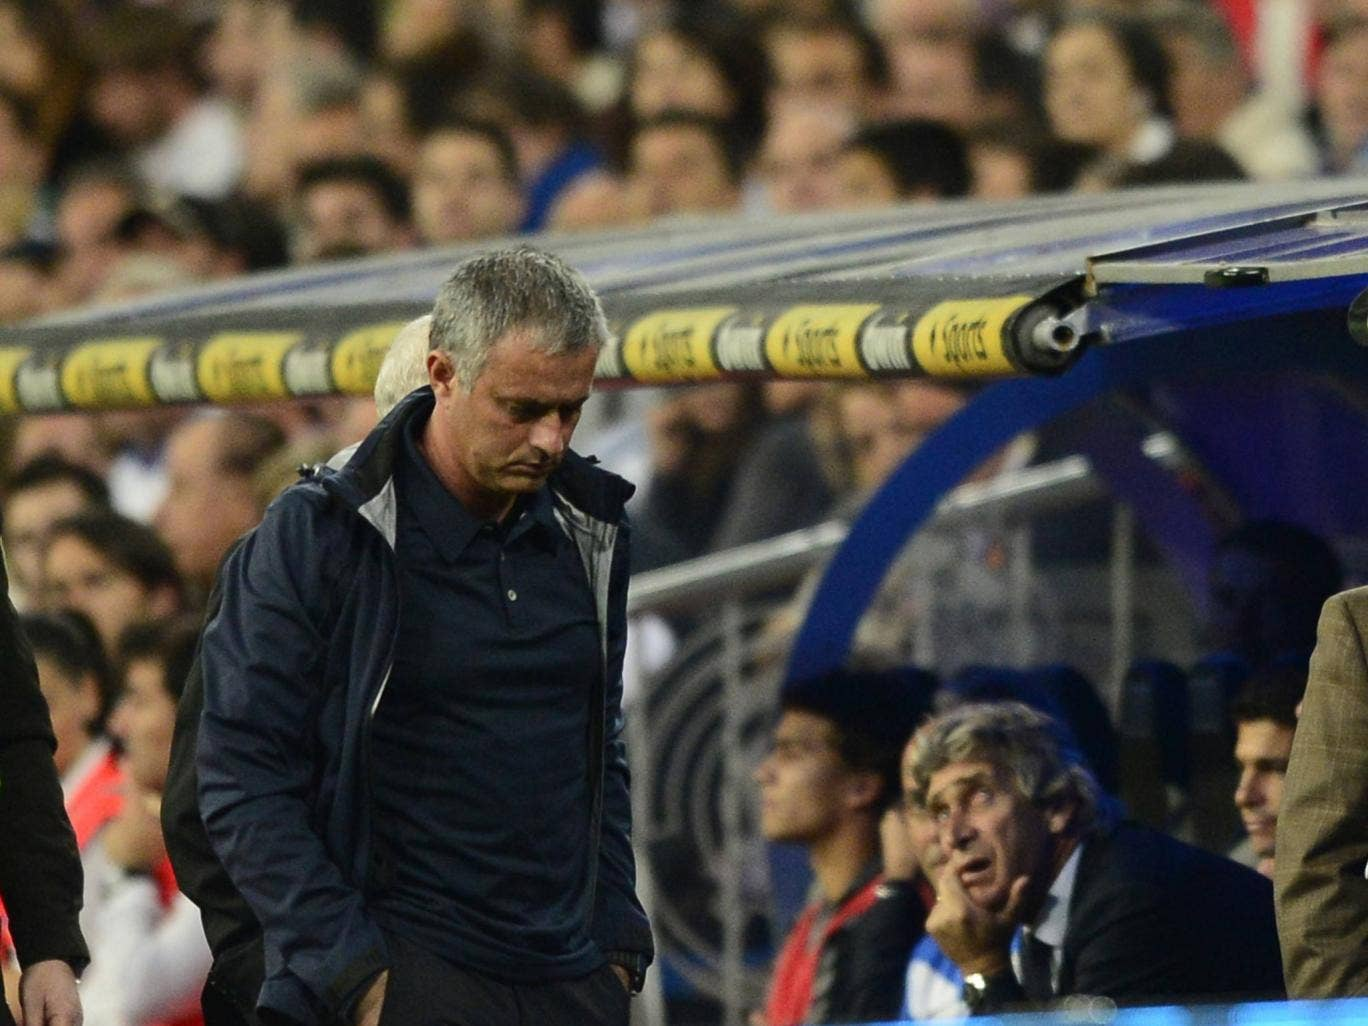 Jose Mourinho pictured during his side's 6-2 win over Malaga